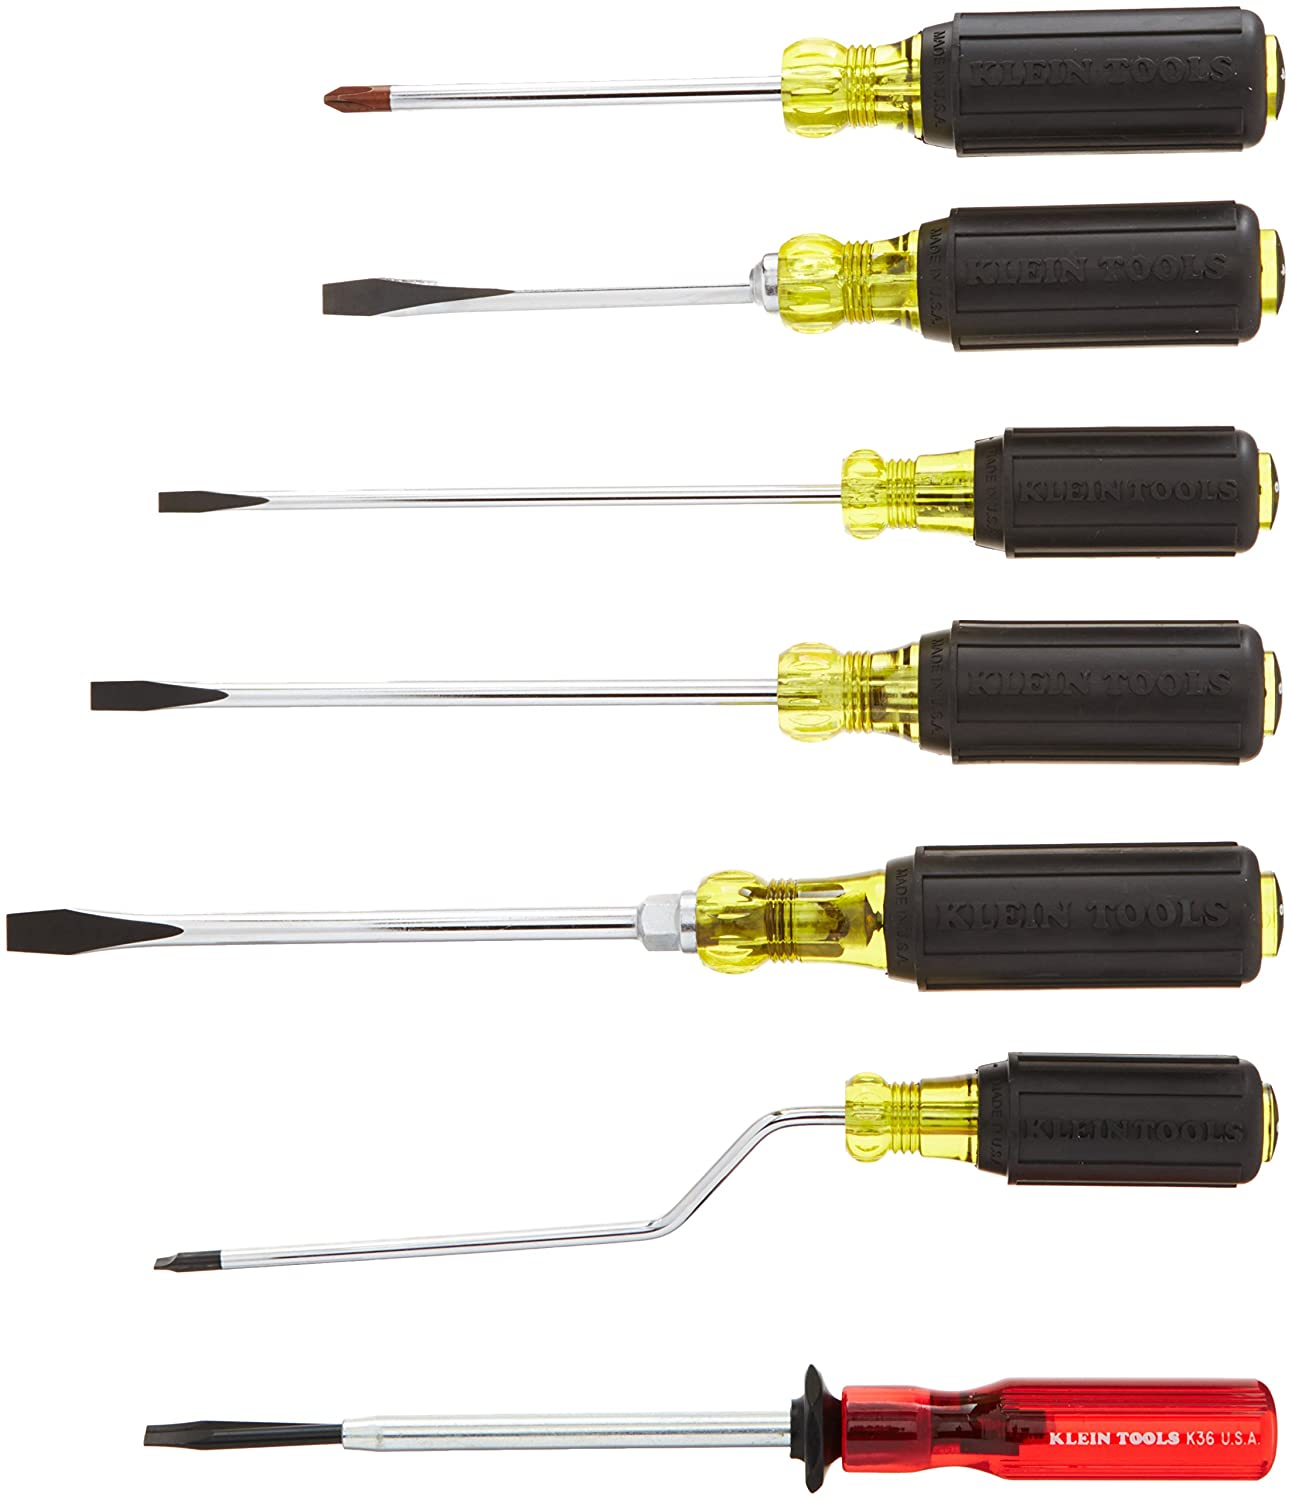 Klein 19555 5-Piece TORX Screwdriver Set Klein Tools